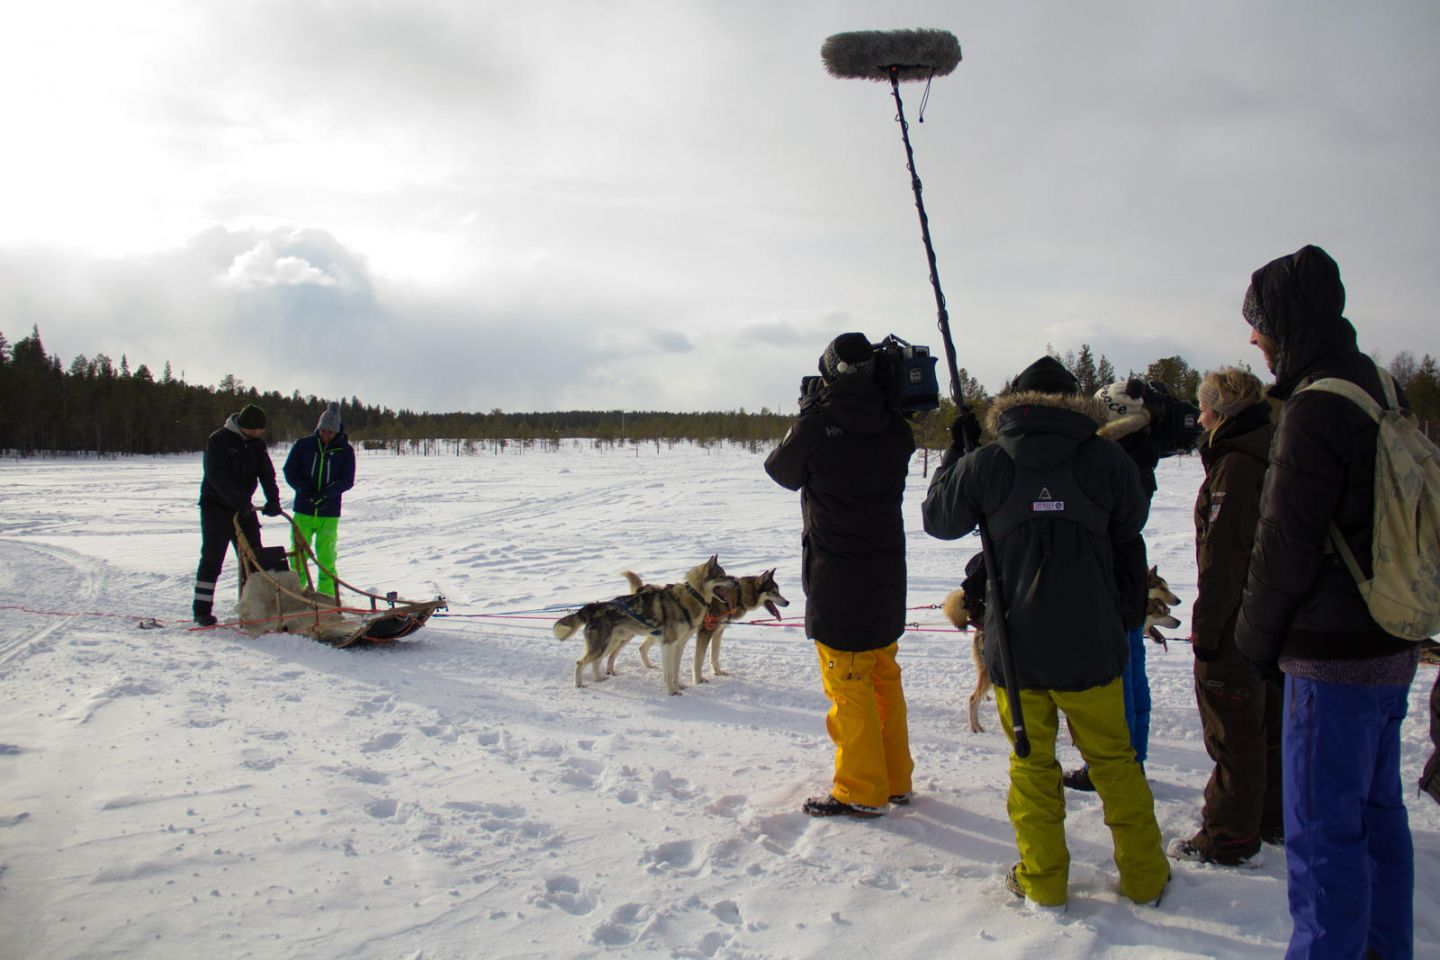 Filming a husky ride in winter in Finland